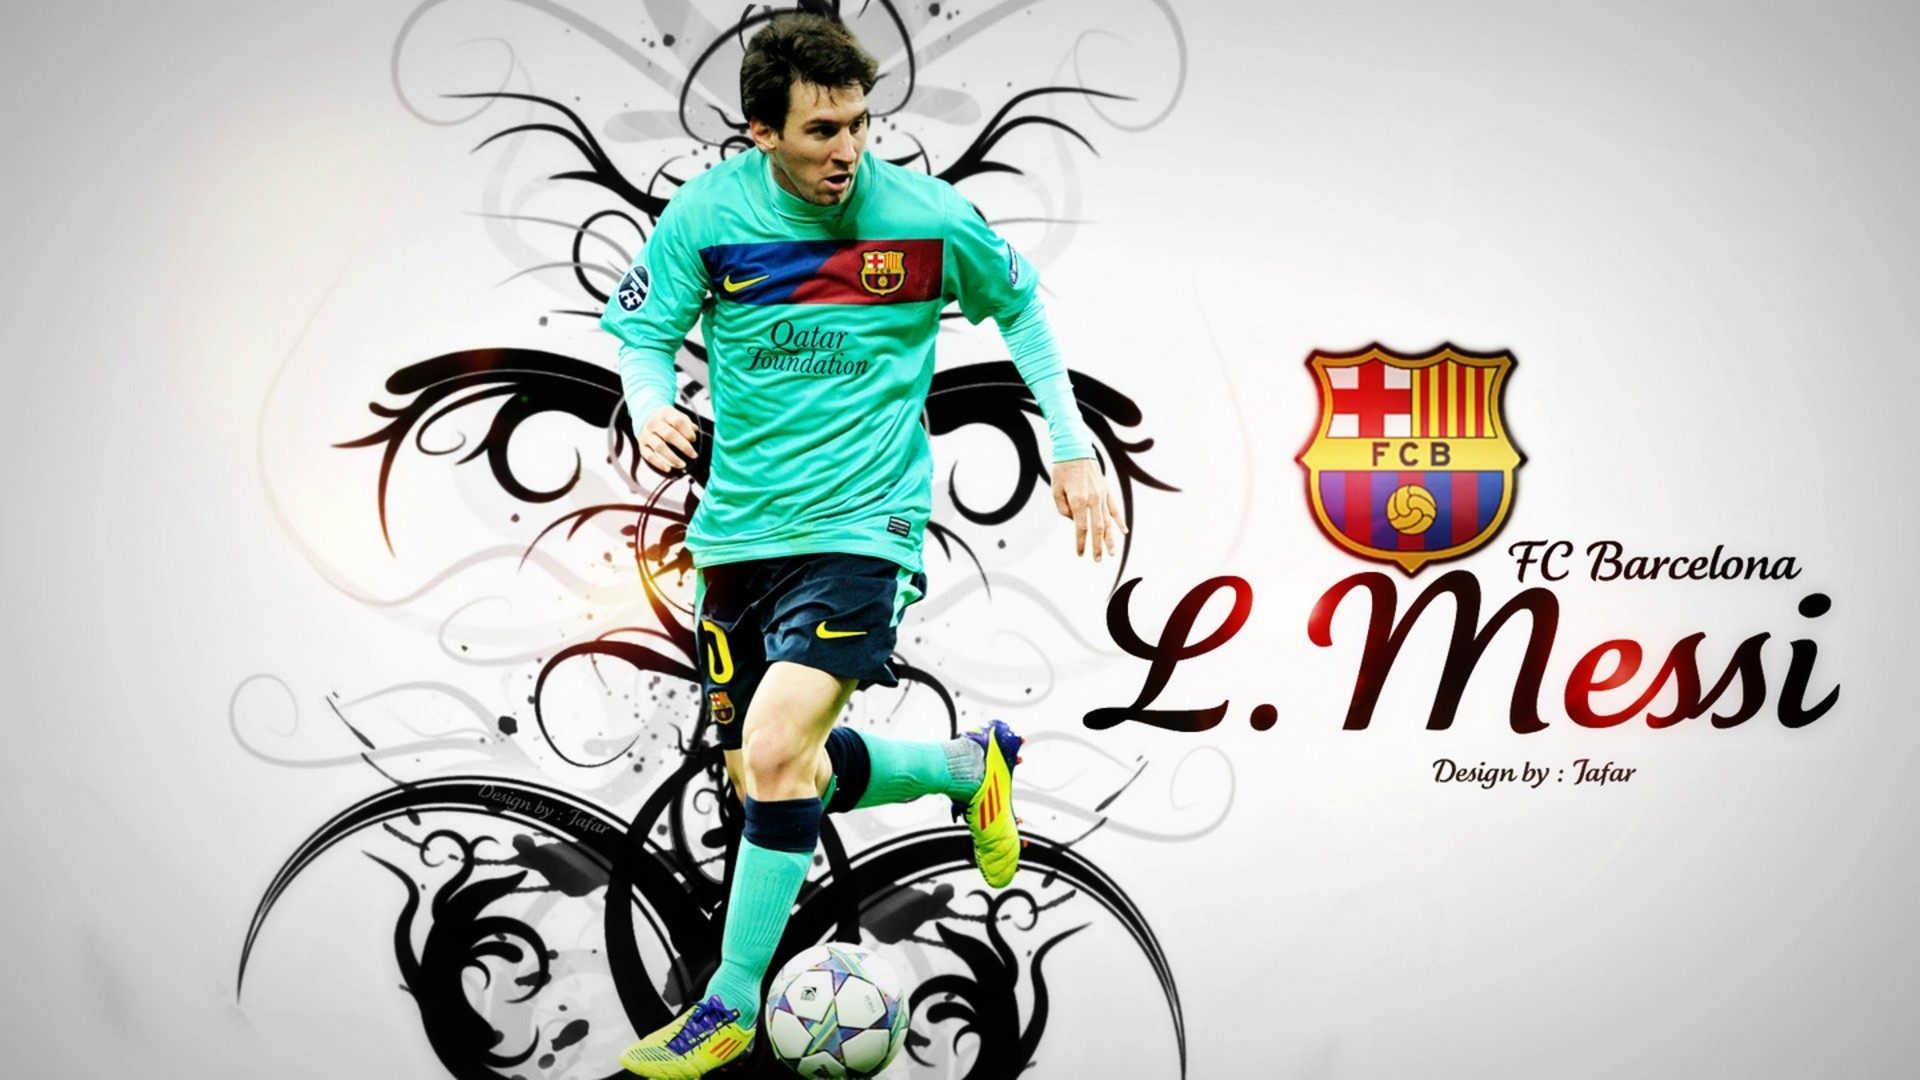 Messi-wallpaper-2014-7.jpg | HD Wallpapers, HD images, HD ...